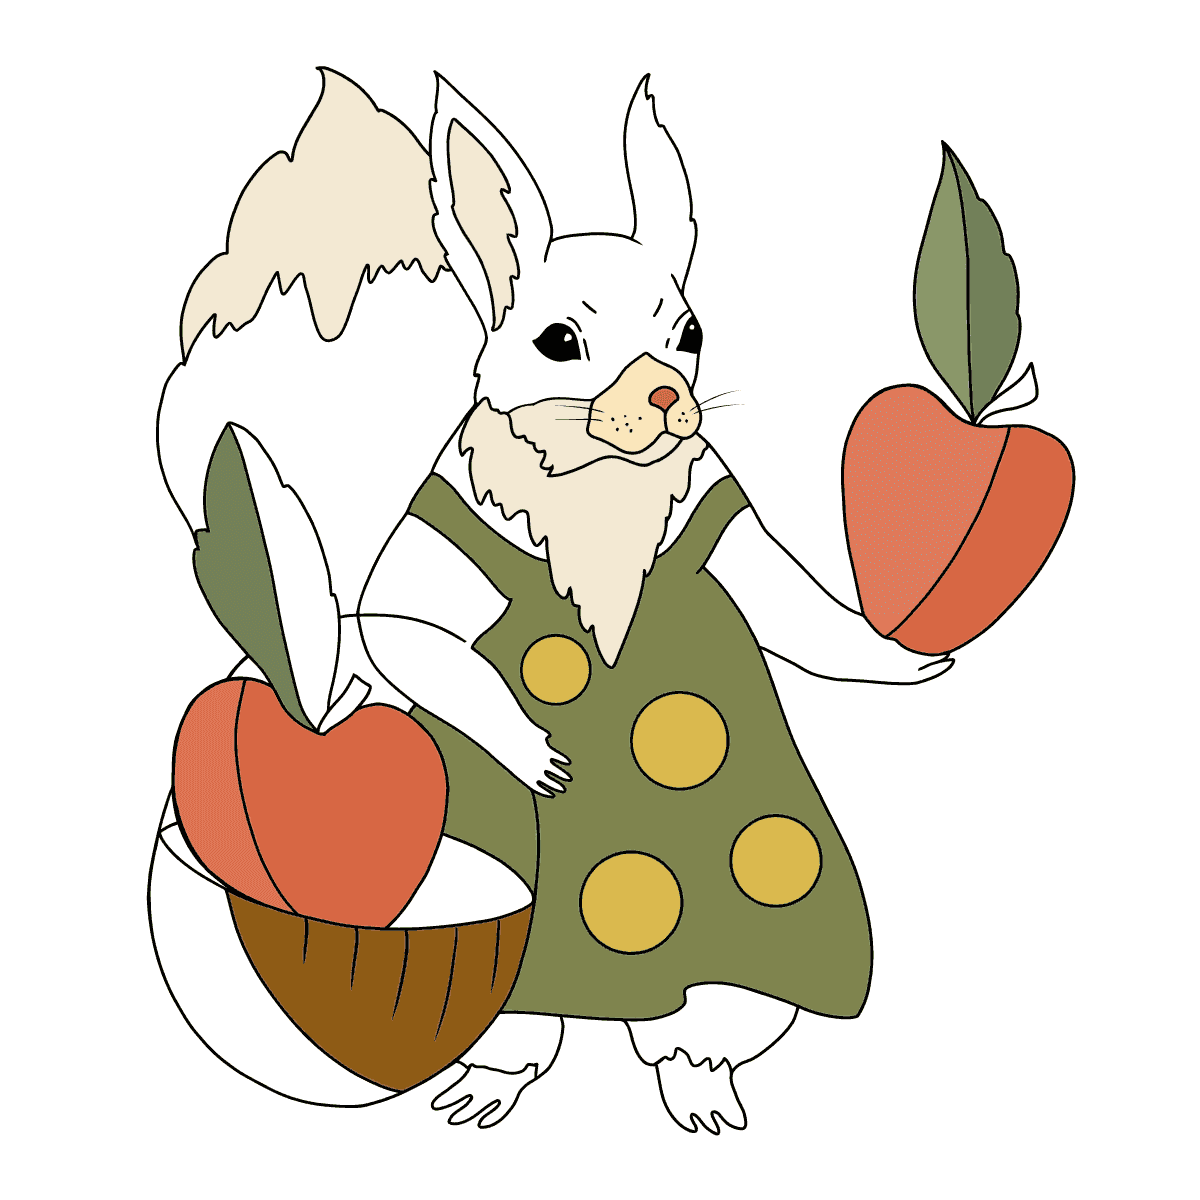 Summer Coloring Page - Squirrels have Collected Apples for Winter